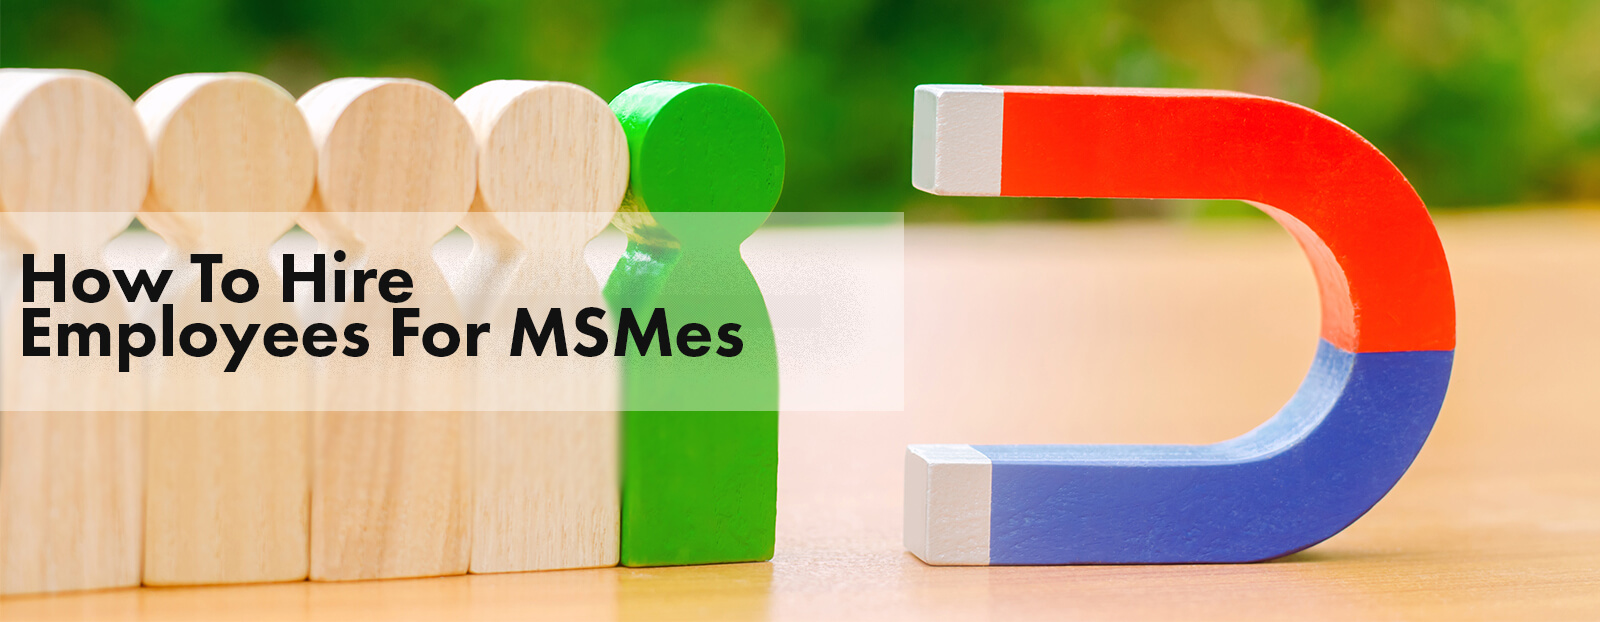 How To Hire Employees For MSMEs